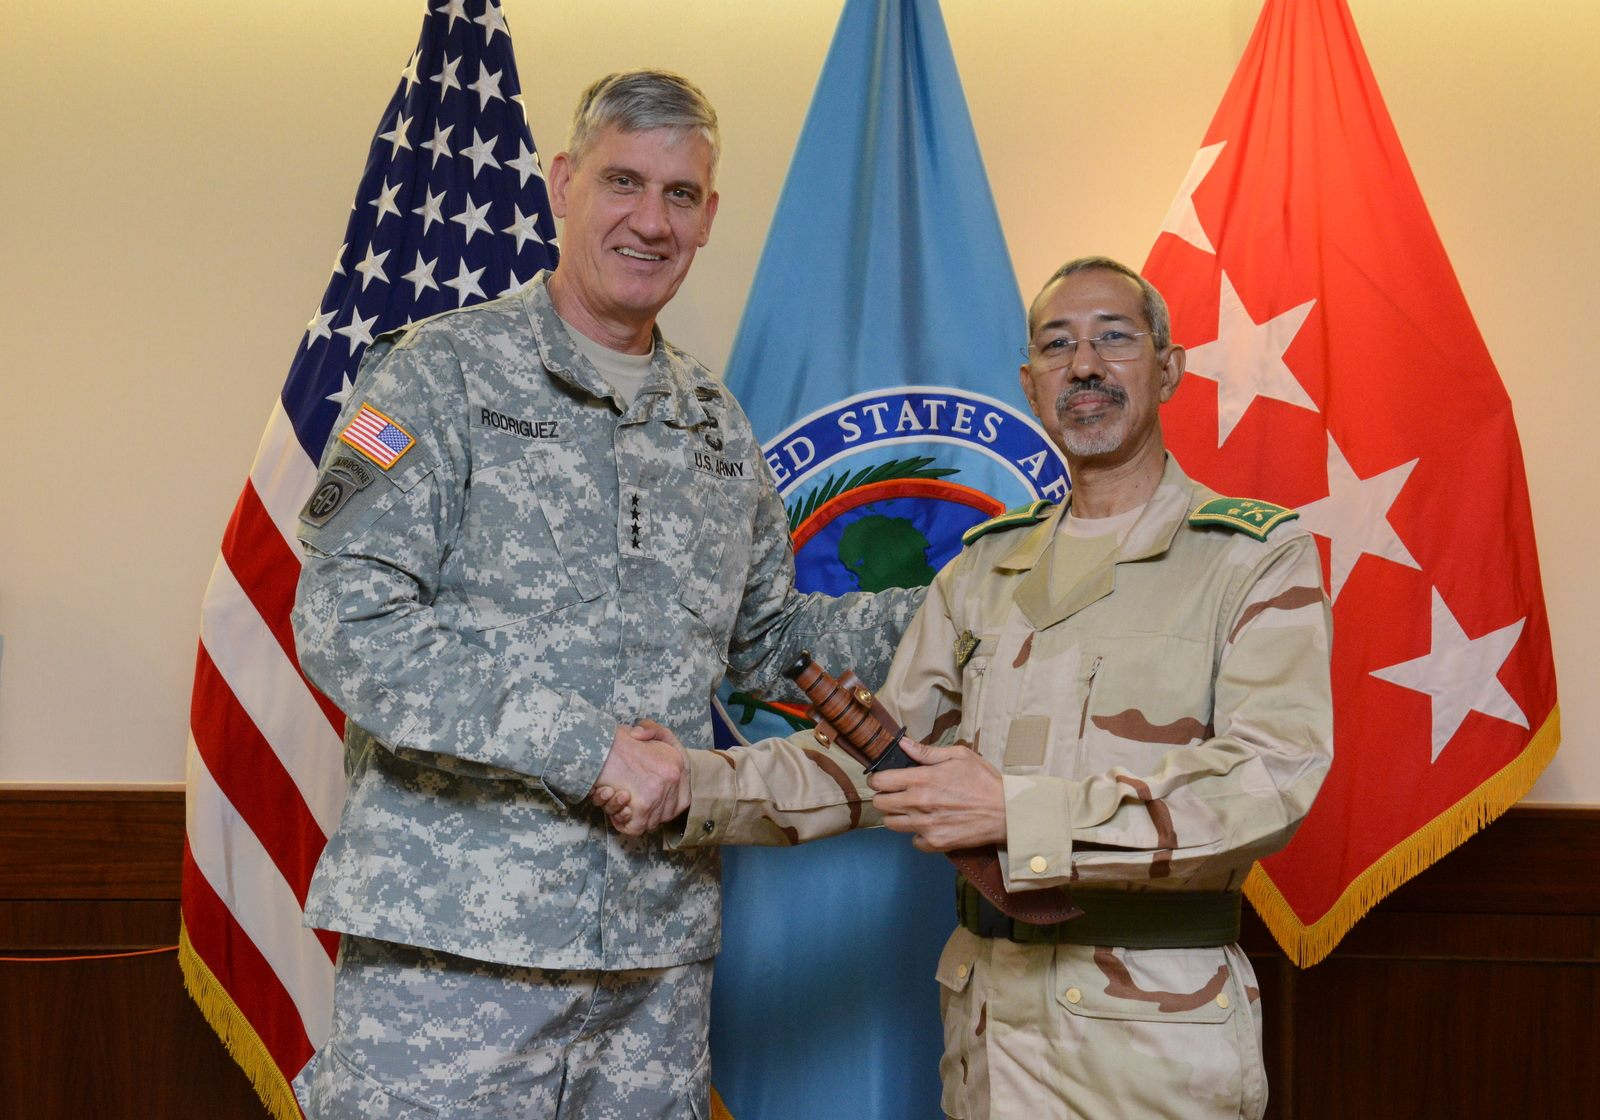 U.S. Army Gen. David Rodriguez, commander of U.S. Africa Command, and Mauritania Brig. Gen. Hanana Sidi Hanana, deputy chief of defense for Mauritania, pose for a photo during a gift exchange in Stuttgart, Germany, Sept. 1, 2015. Hanana visited AFRICOM to discuss how the U.S. military plans and conducts joint operations at the strategic level.